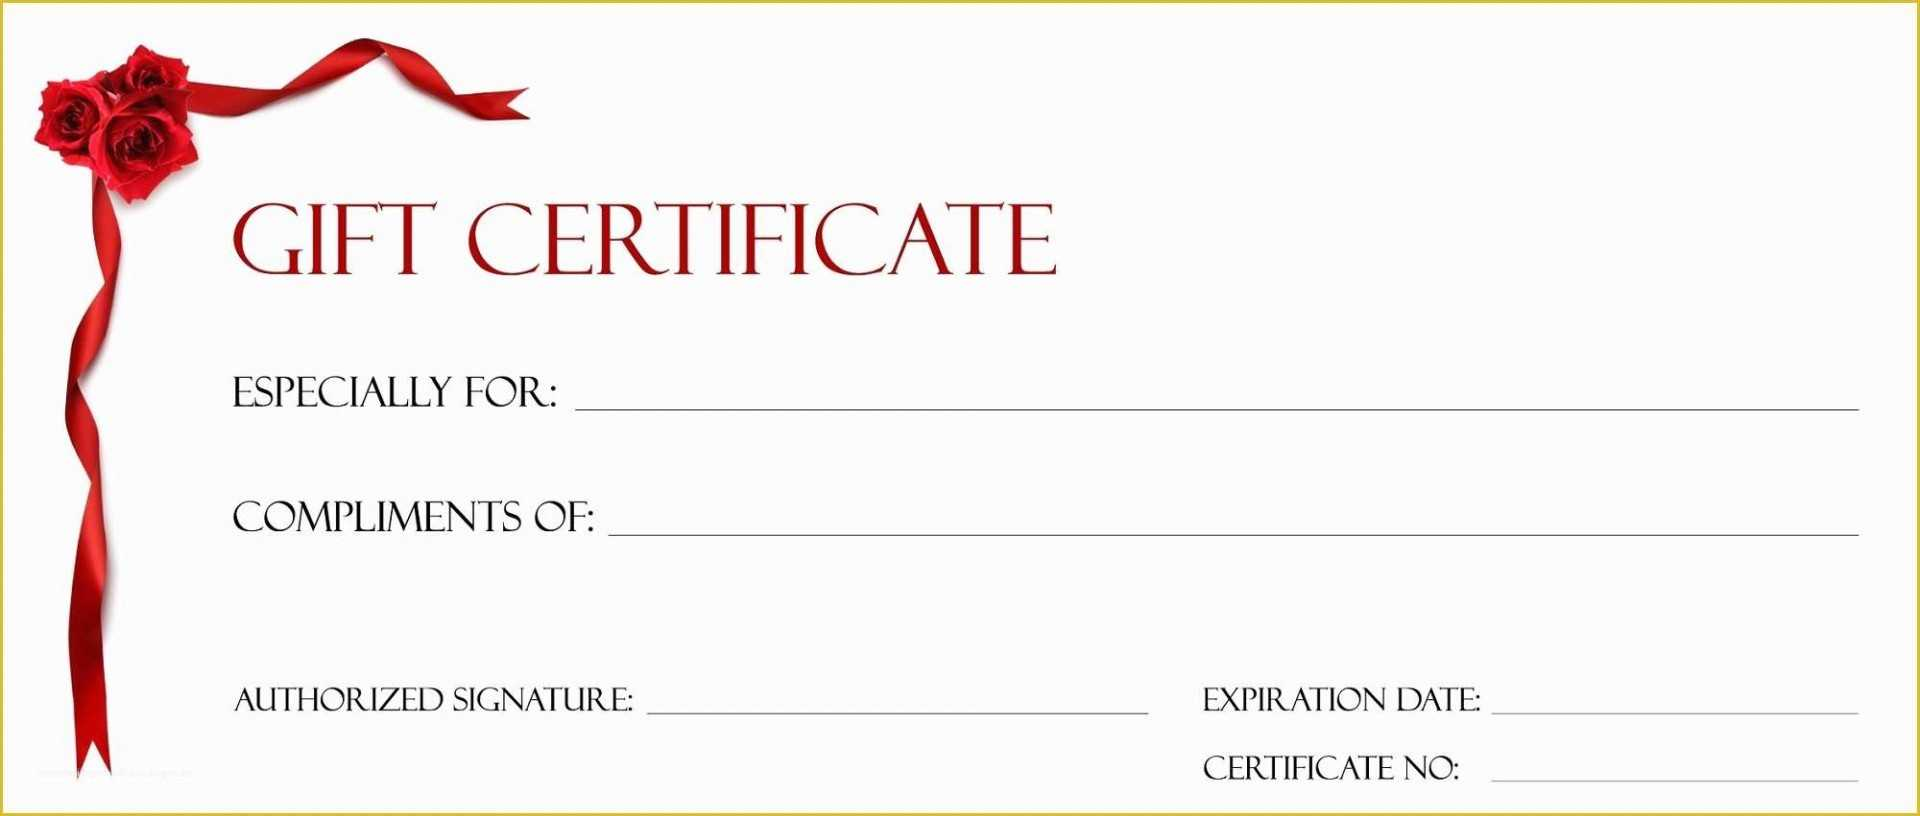 006 Free Printable Christmas Gift Certificate Template Word Throughout Christmas Gift Certificate Template Free Download